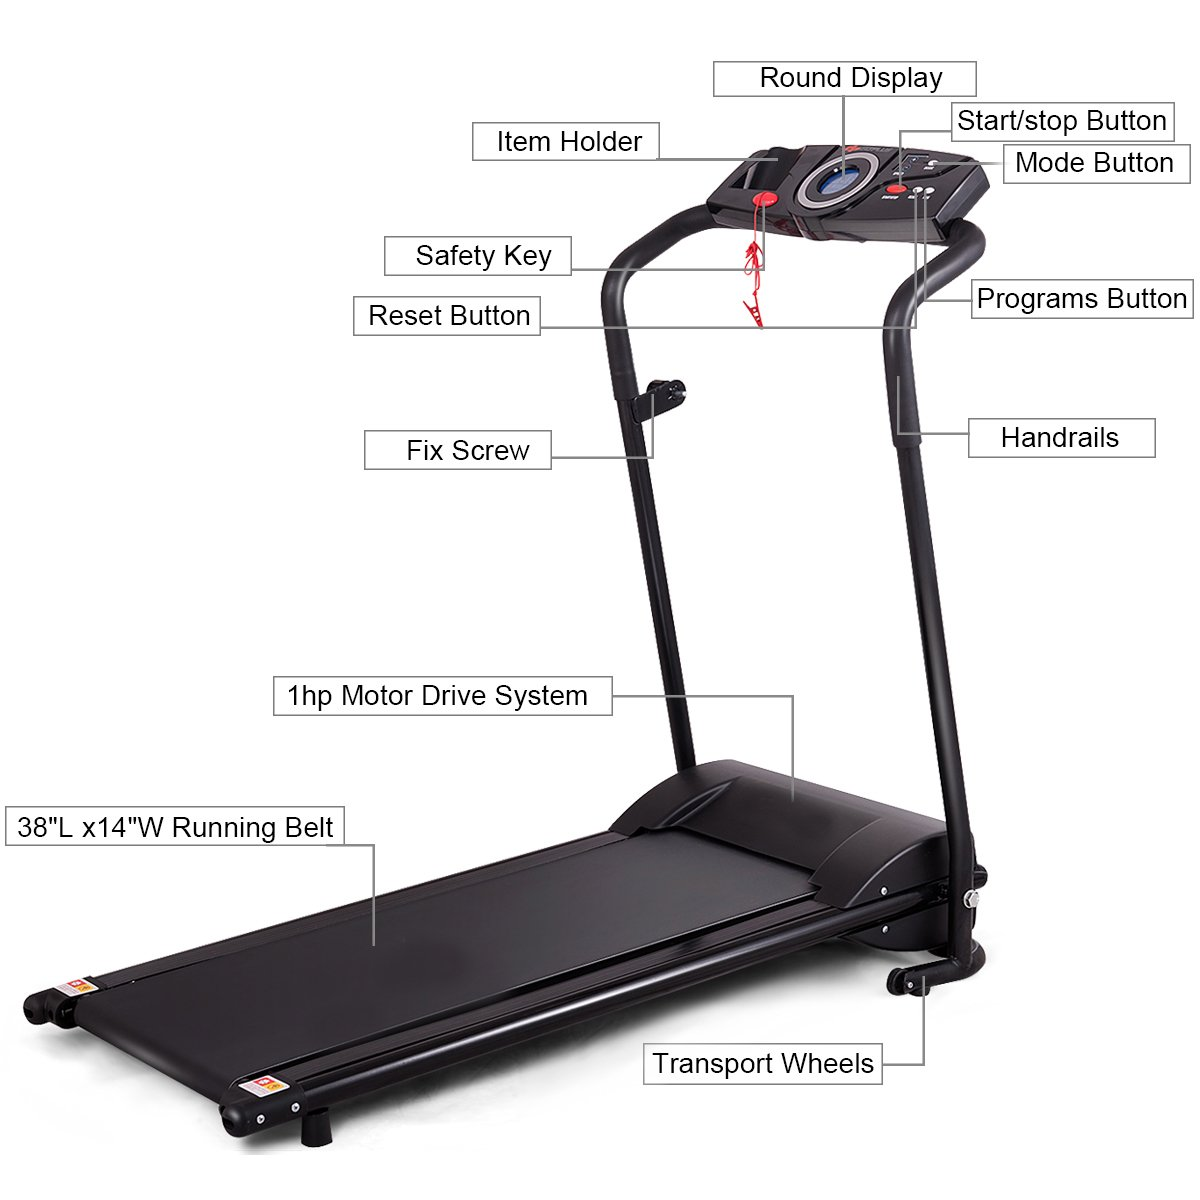 GYMAX Folding Electric Portable Treadmill Low Noise Jogging Walking Running Machine Exercise Treadmill w/Safety Key by GYMAX (Image #5)